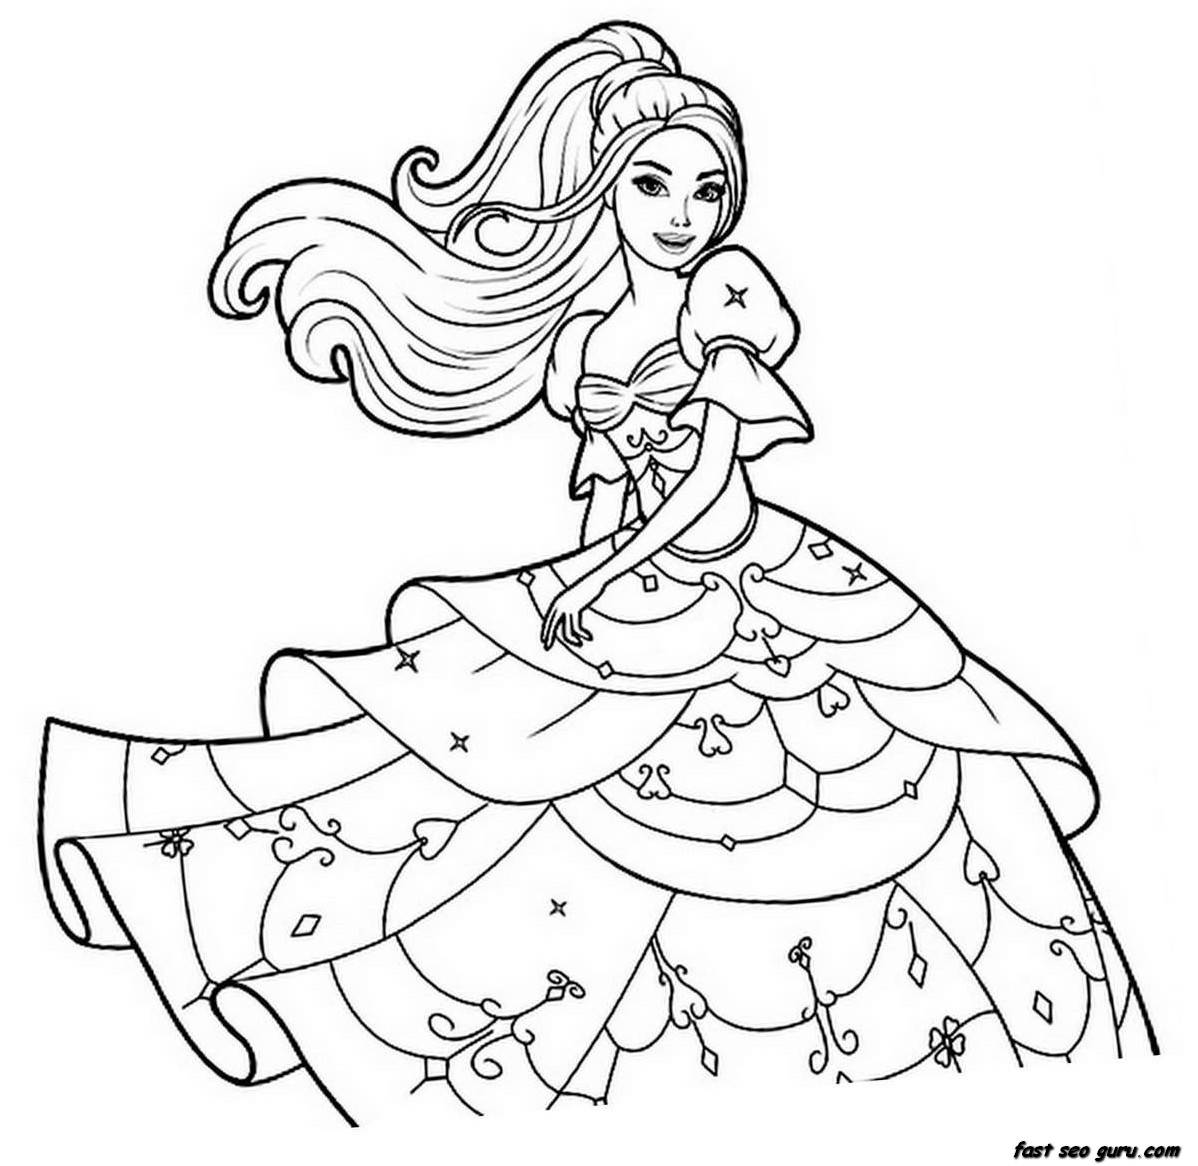 Coloring pages for girls only coloring pages for Girls coloring pages to print